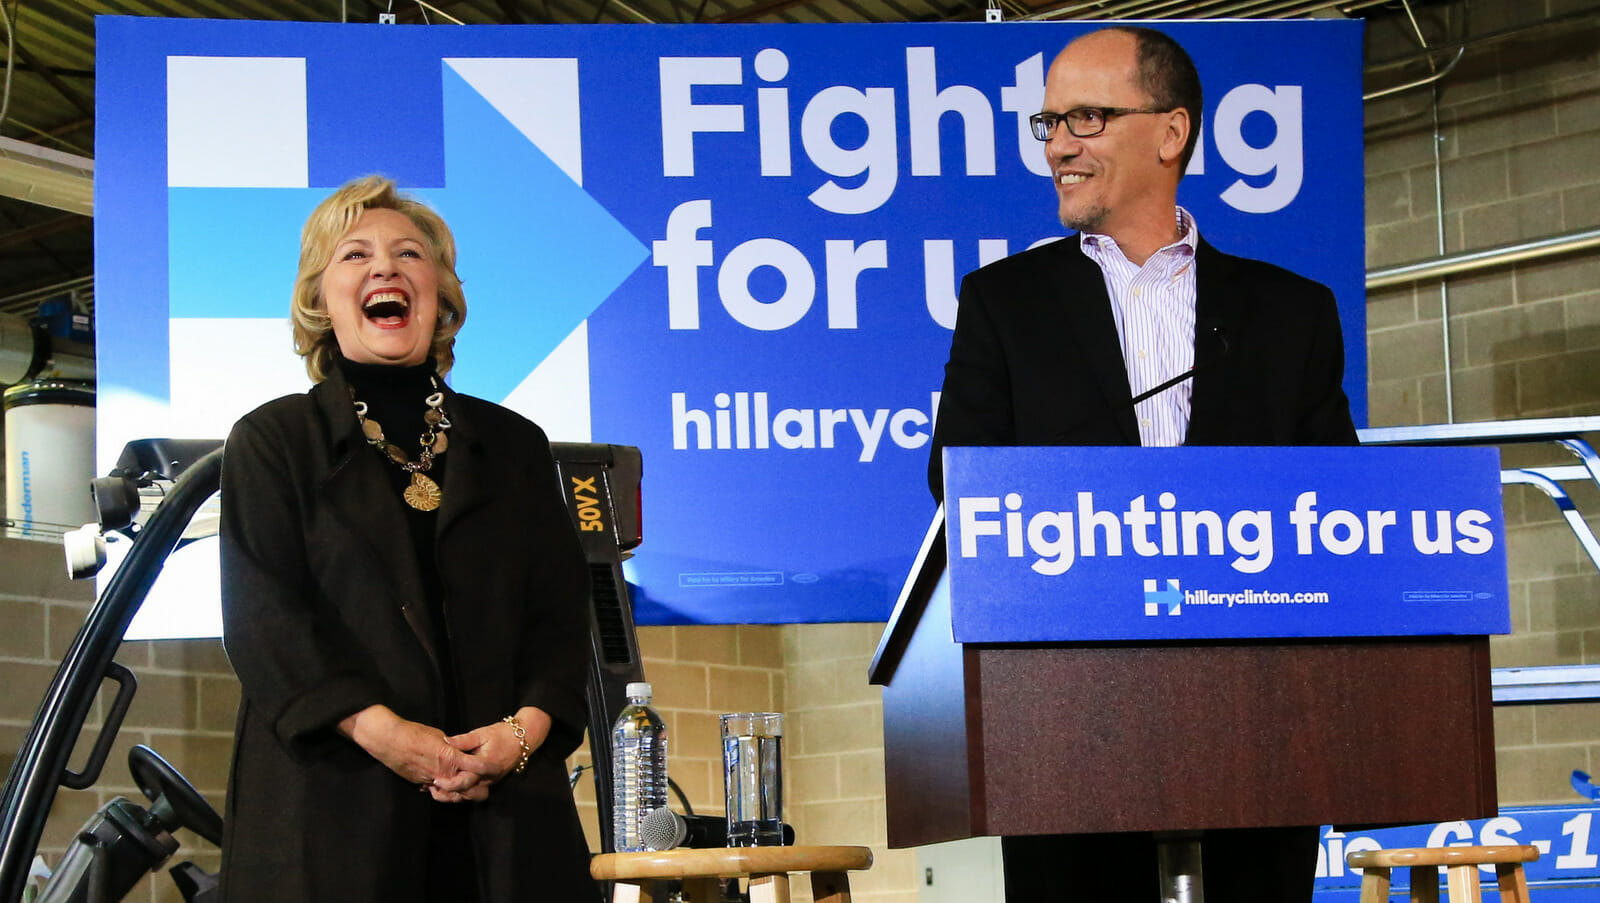 DNC Chairman Asked if Clinton Ordered the Party to File Lawsuit Against Trump/WikiLeaks, Responds: 'You'll Have to Ask Sec. Clinton'